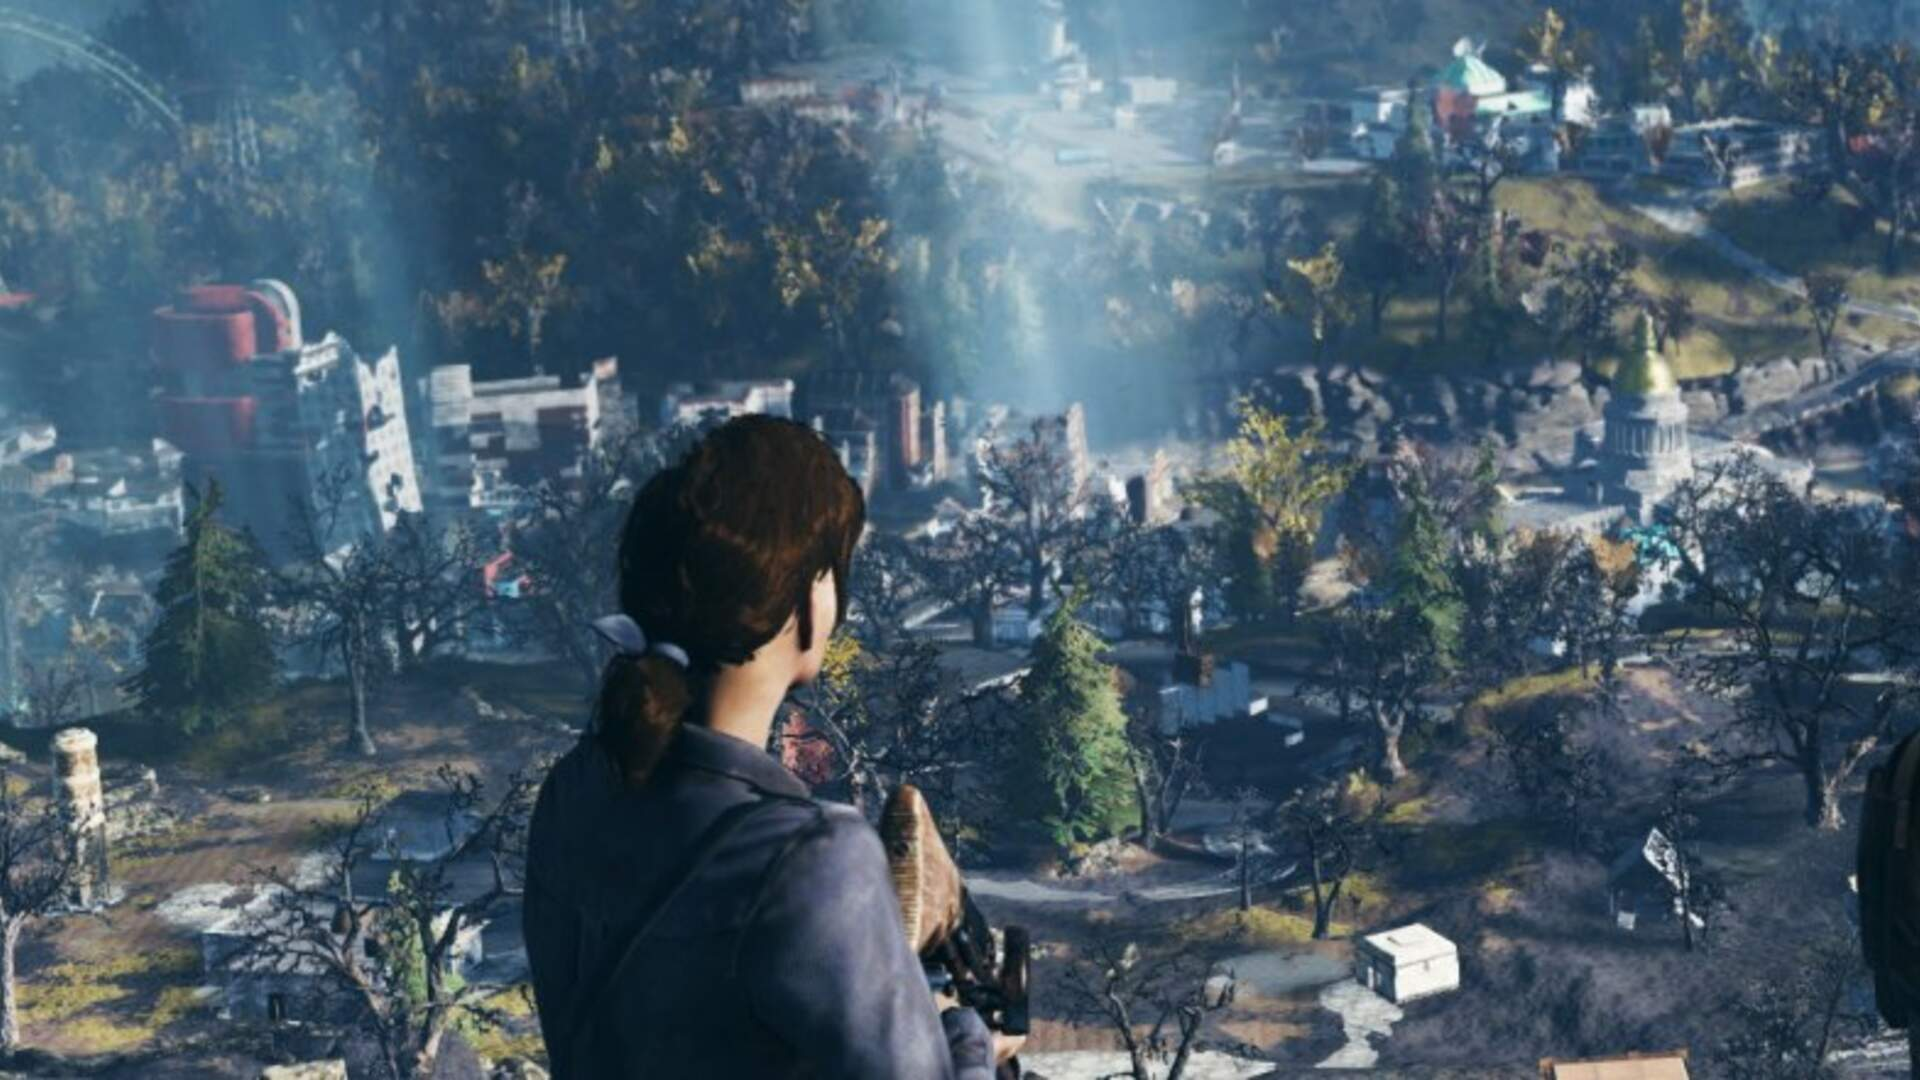 Fallout 76 Beta Date and Times - Is There Another Fallout 76 Beta on PS4, PC and Xbox One?